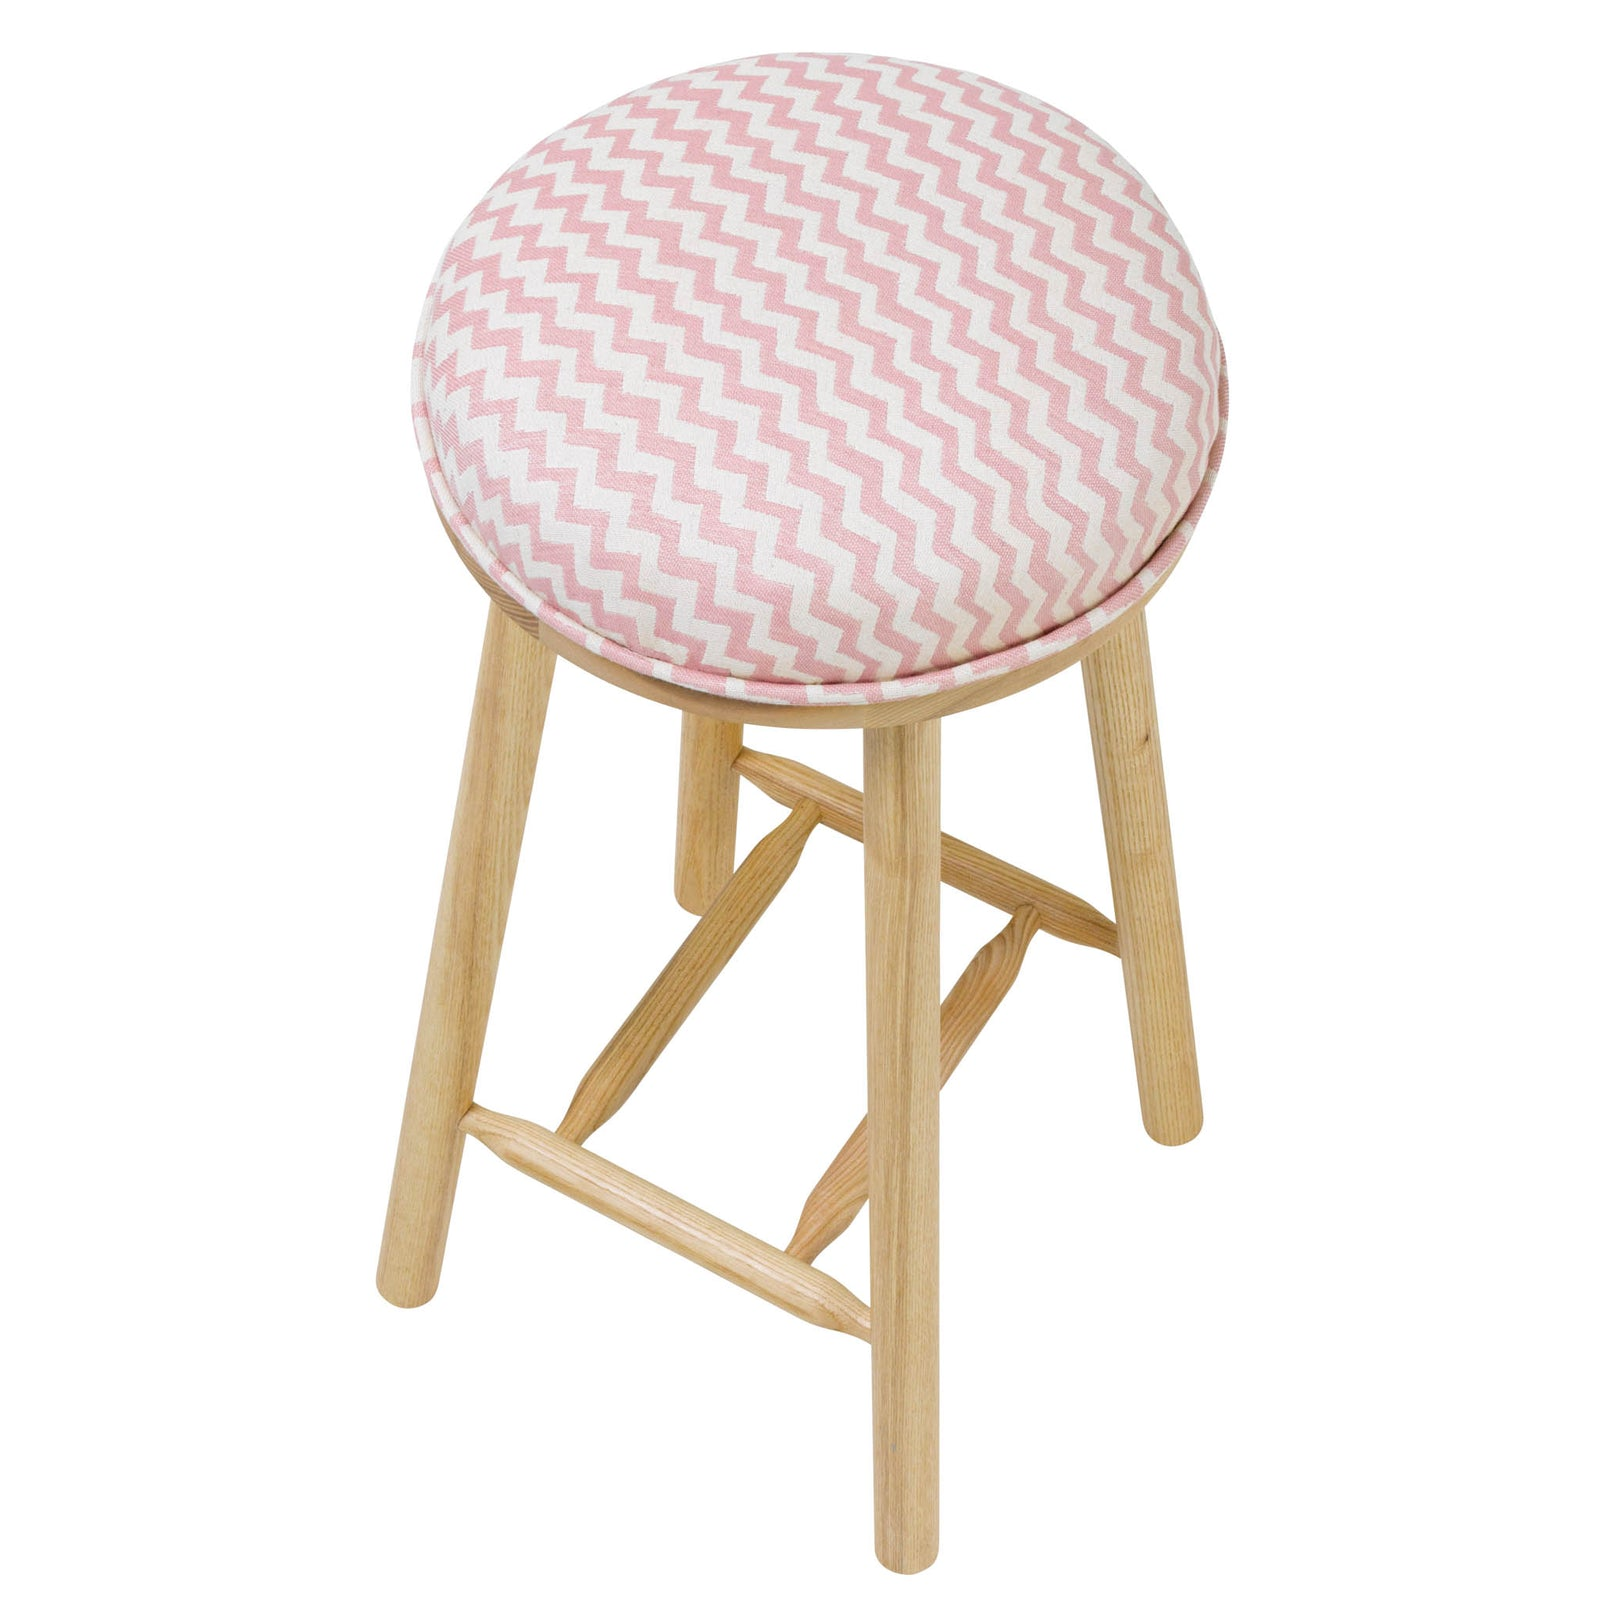 The Turner Counter Stool Upholstered in Climbing Chevy from Tori Murphy